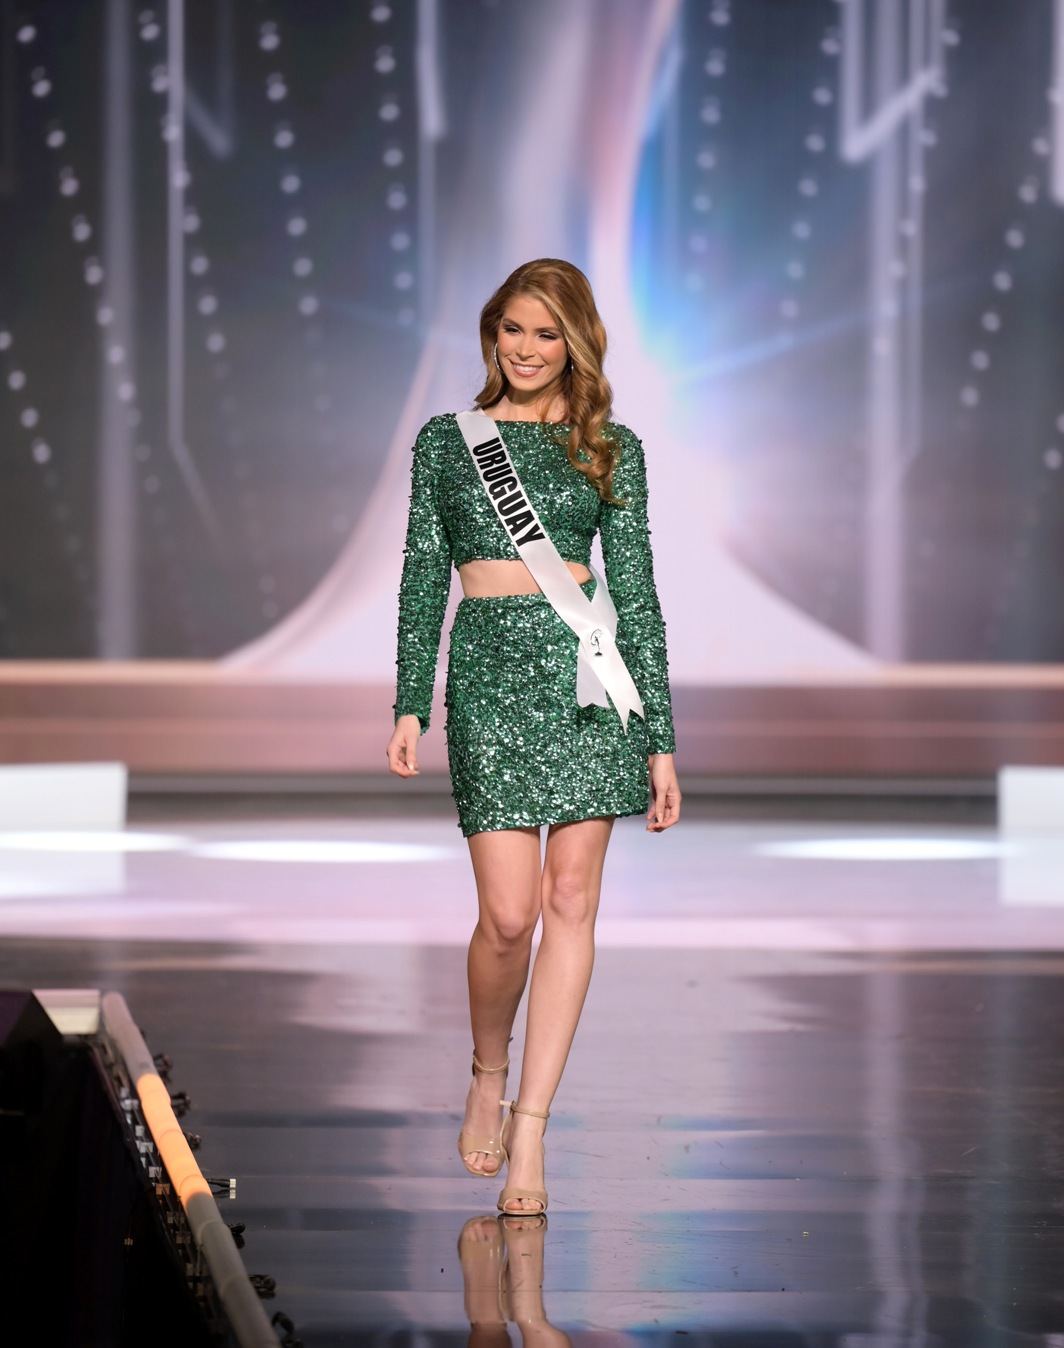 Lola De los Santos, Miss Universe Uruguay 2020 on stage in fashion by Sherri Hill during the opening of the MISS UNIVERSE® Preliminary Competition at the Seminole Hard Rock Hotel & Casino in Hollywood, Florida on May 14, 2021. Tune in to the live telecast on FYI and Telemundo on Sunday, May 16 at 8:00 PM ET to see who will become the next Miss Universe.